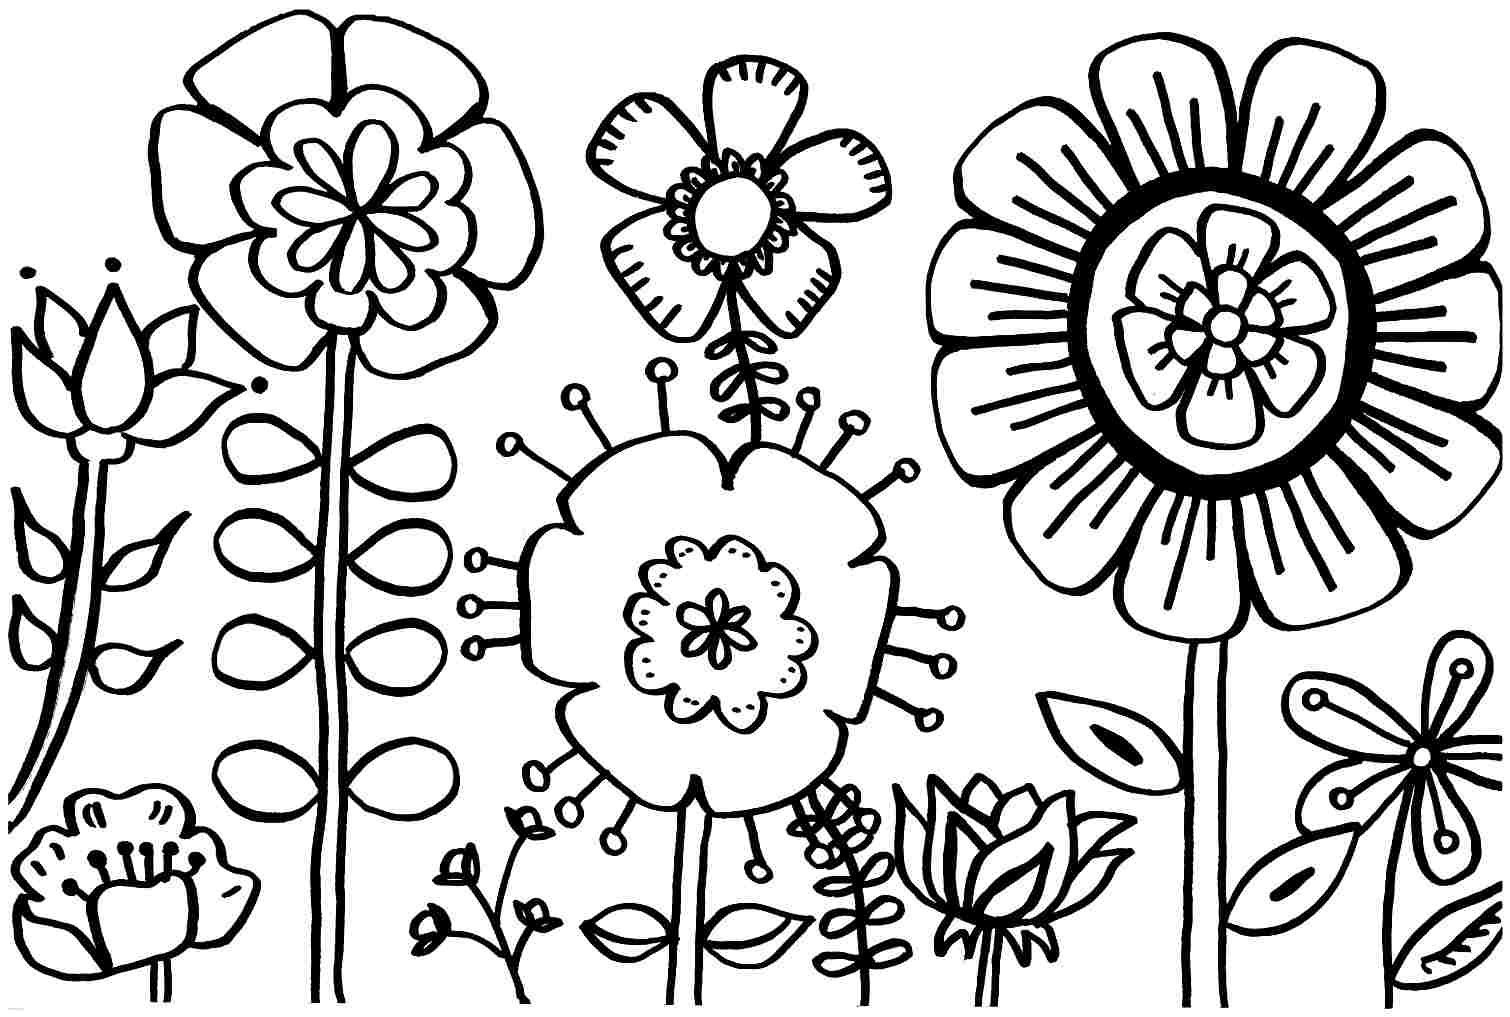 Spring Coloring Pages Free Coloring Pages Free Printable Spring - Free Printable Spring Coloring Pages